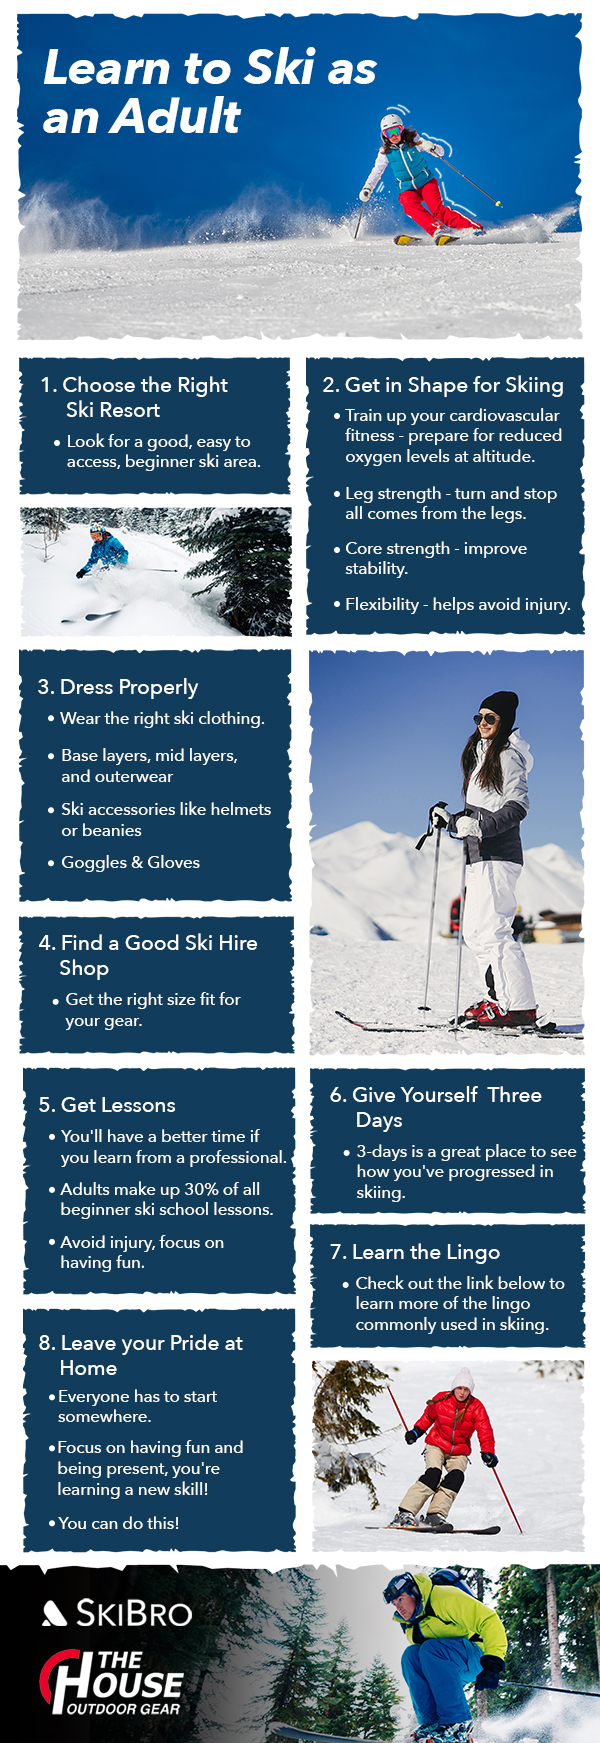 Learn to ski as an adult infographic